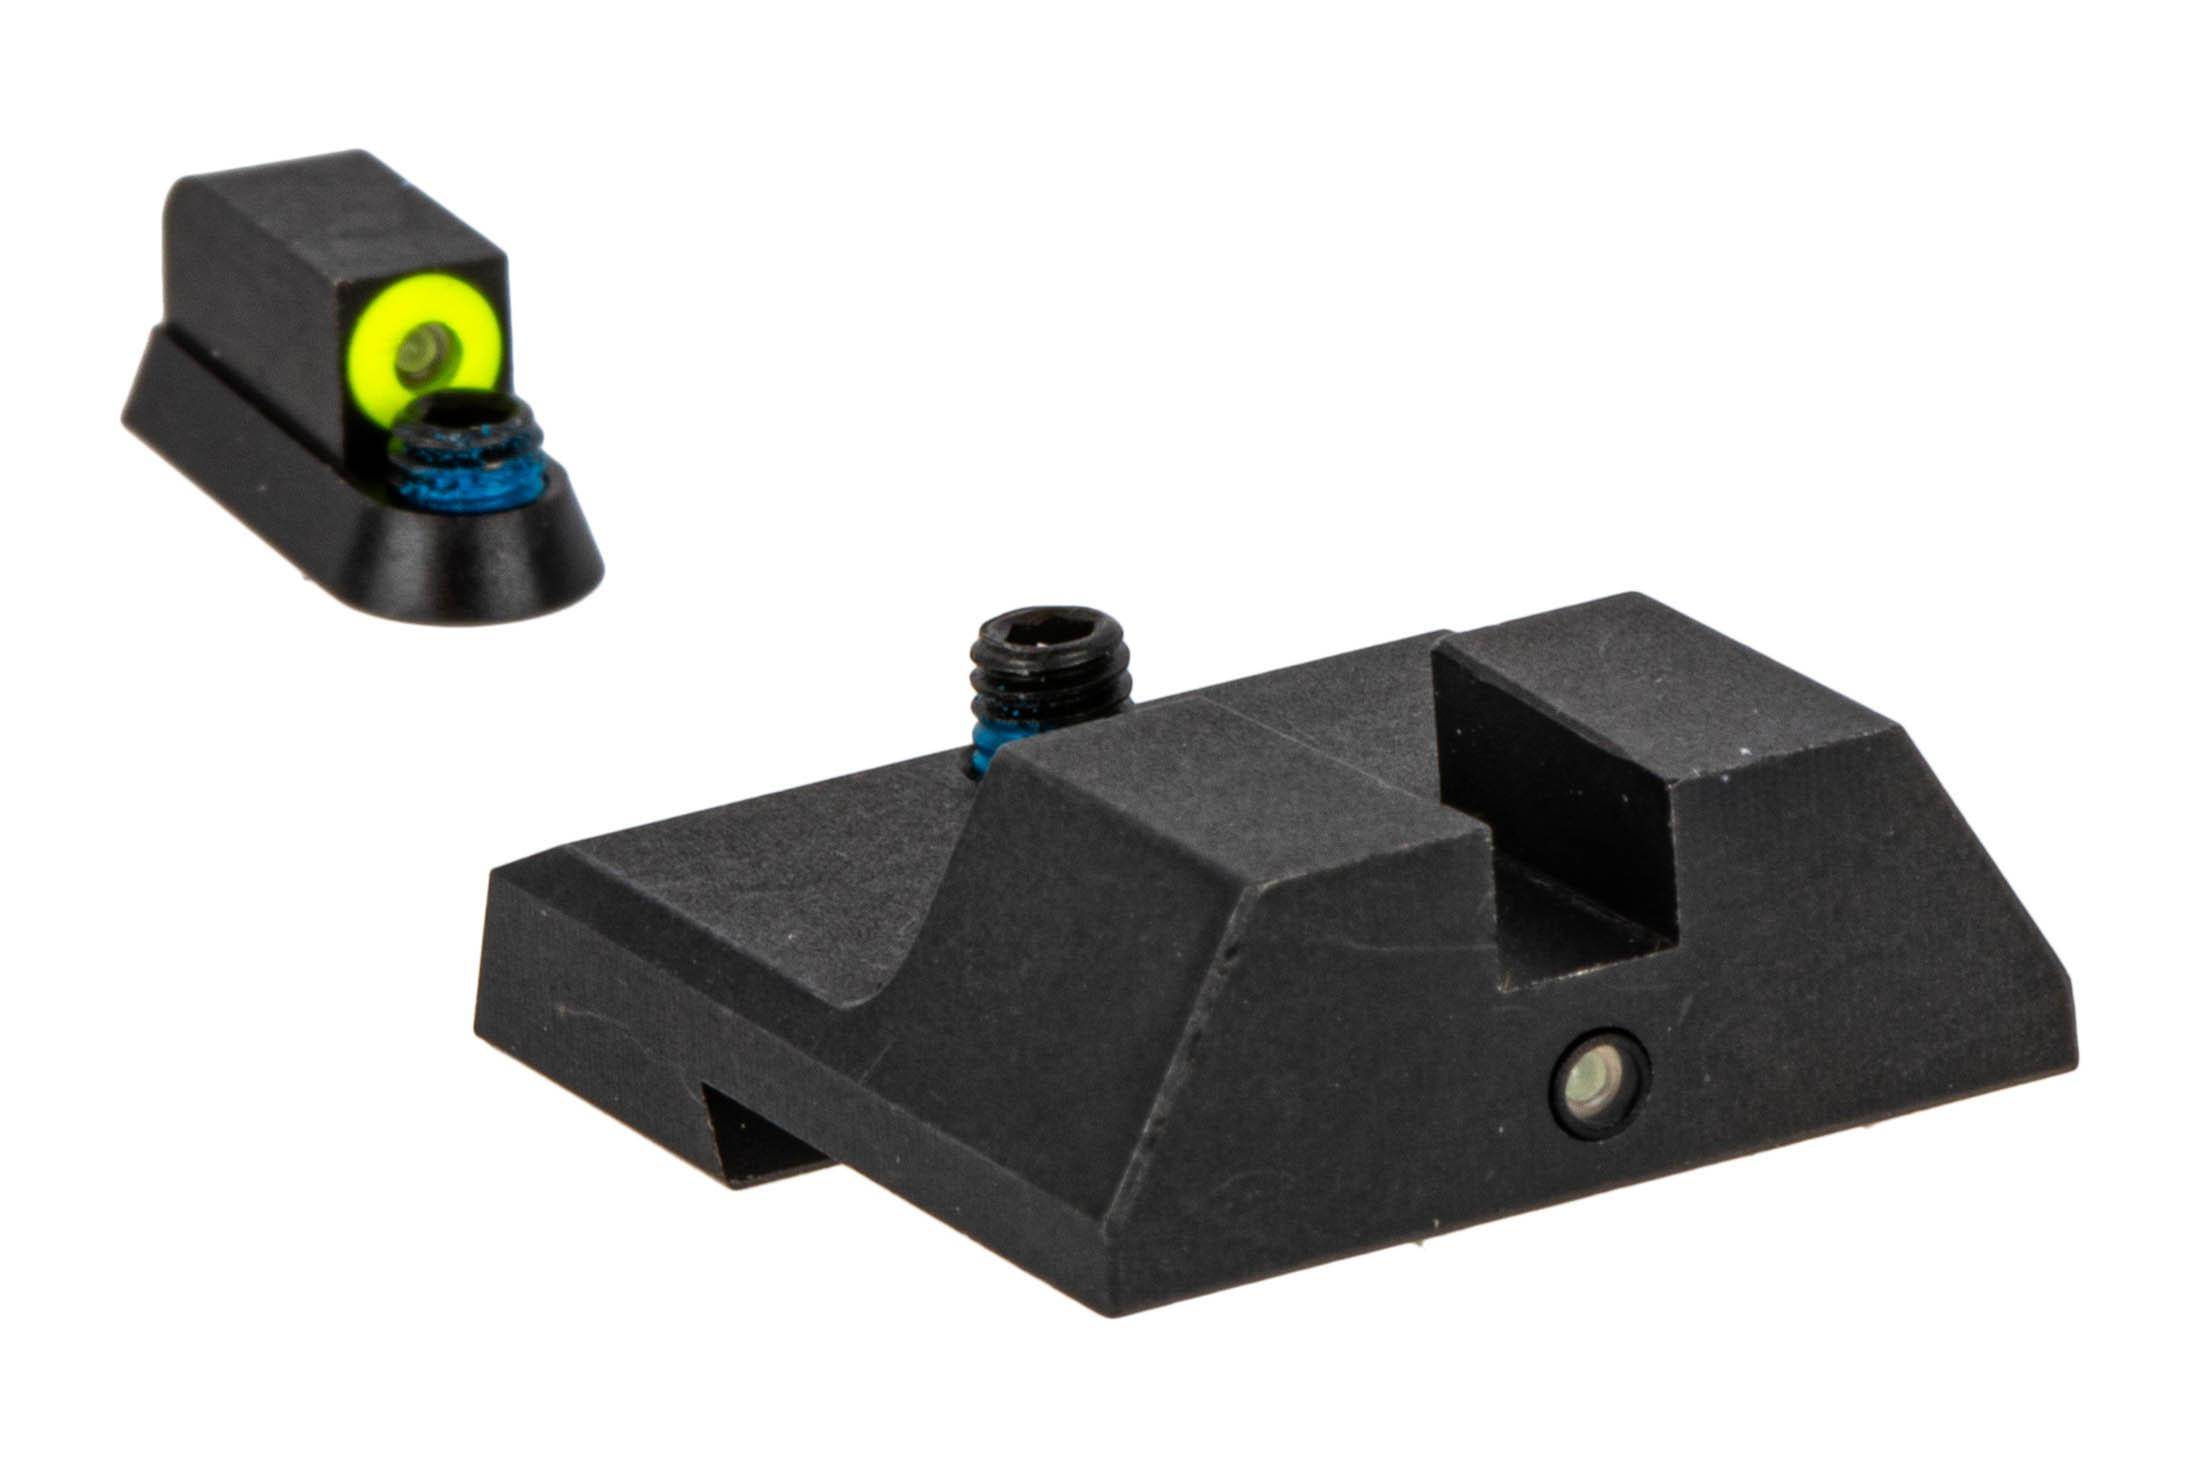 Night Fision Accur8 Perfect Dot Night Sight Set with square notch, Yellow front and Black rear ring for the CZ P10C.